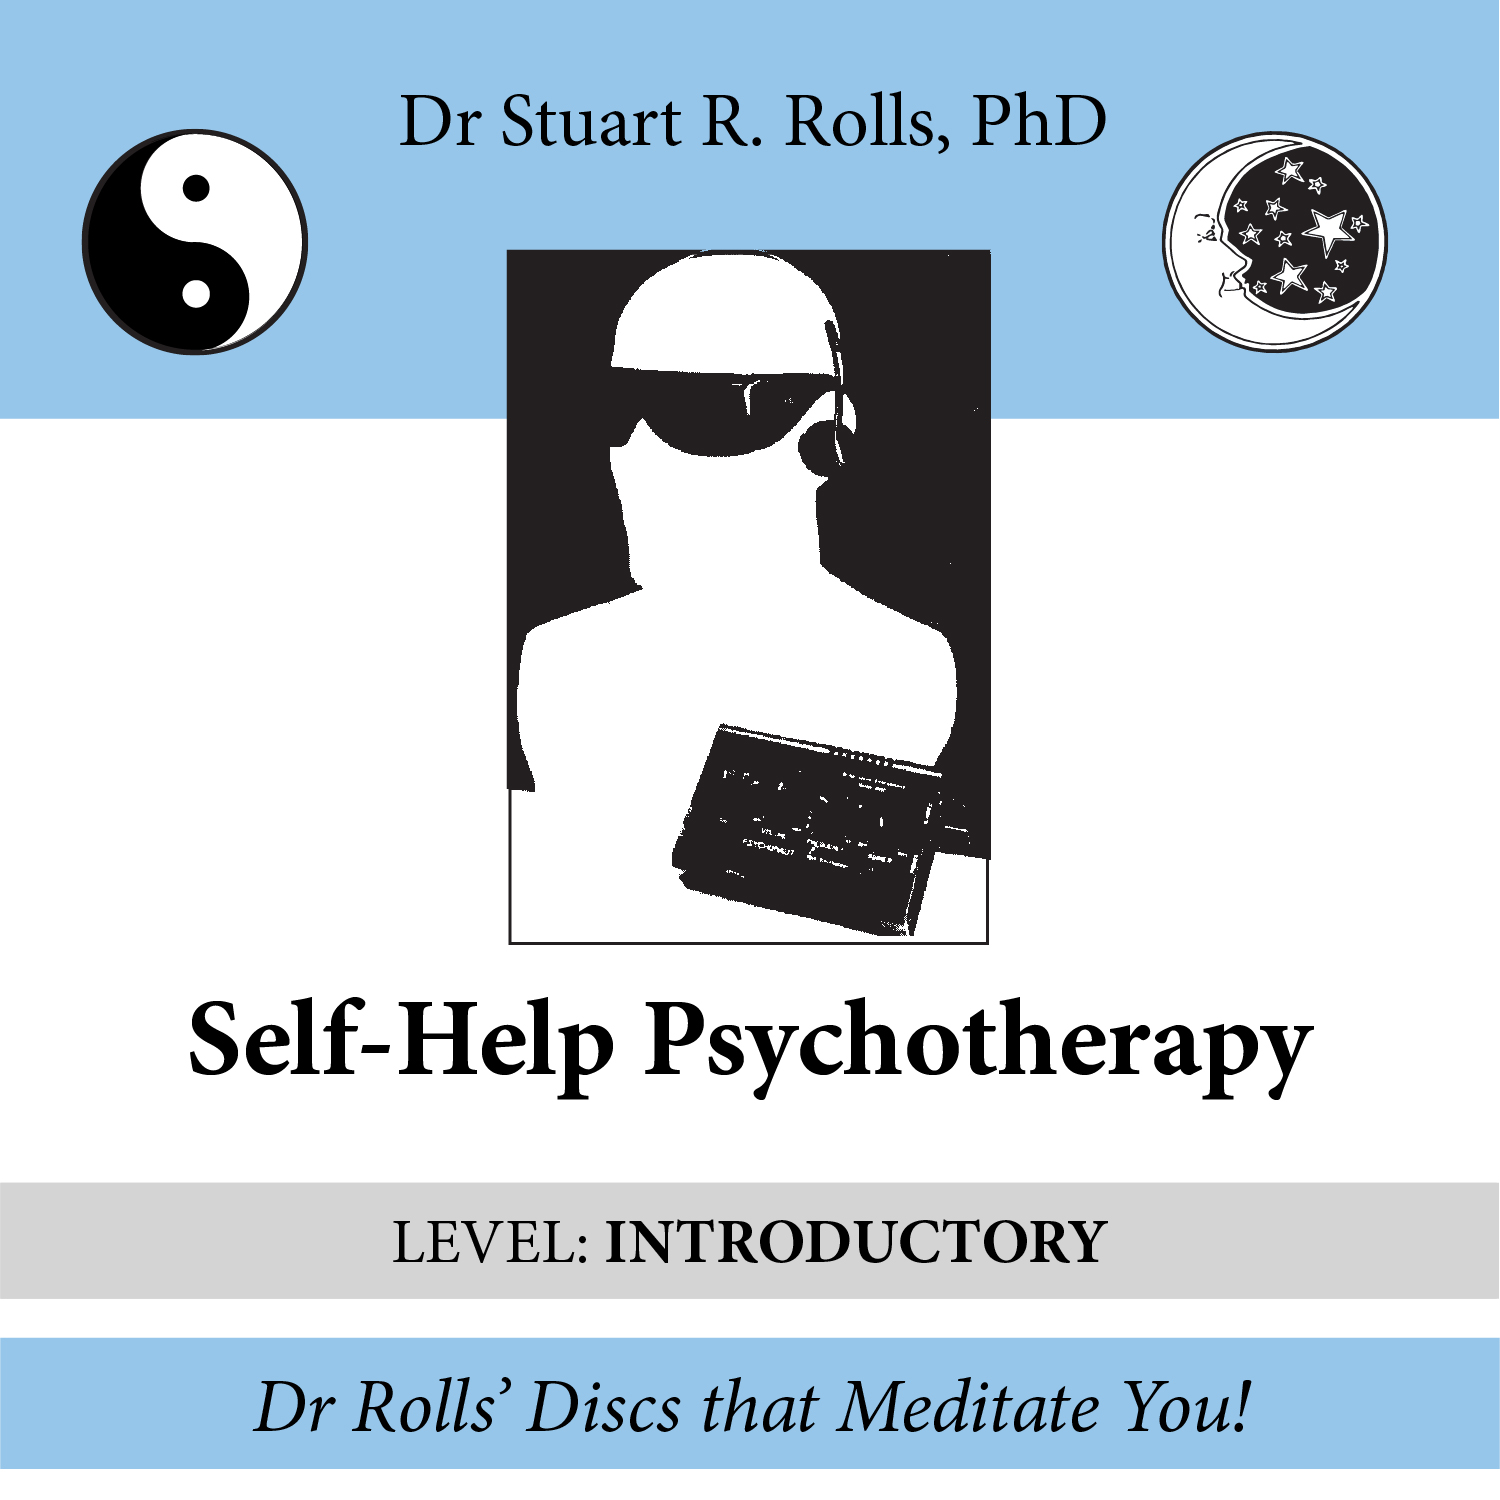 Self-Help Psychotherapy (Introductory Level)